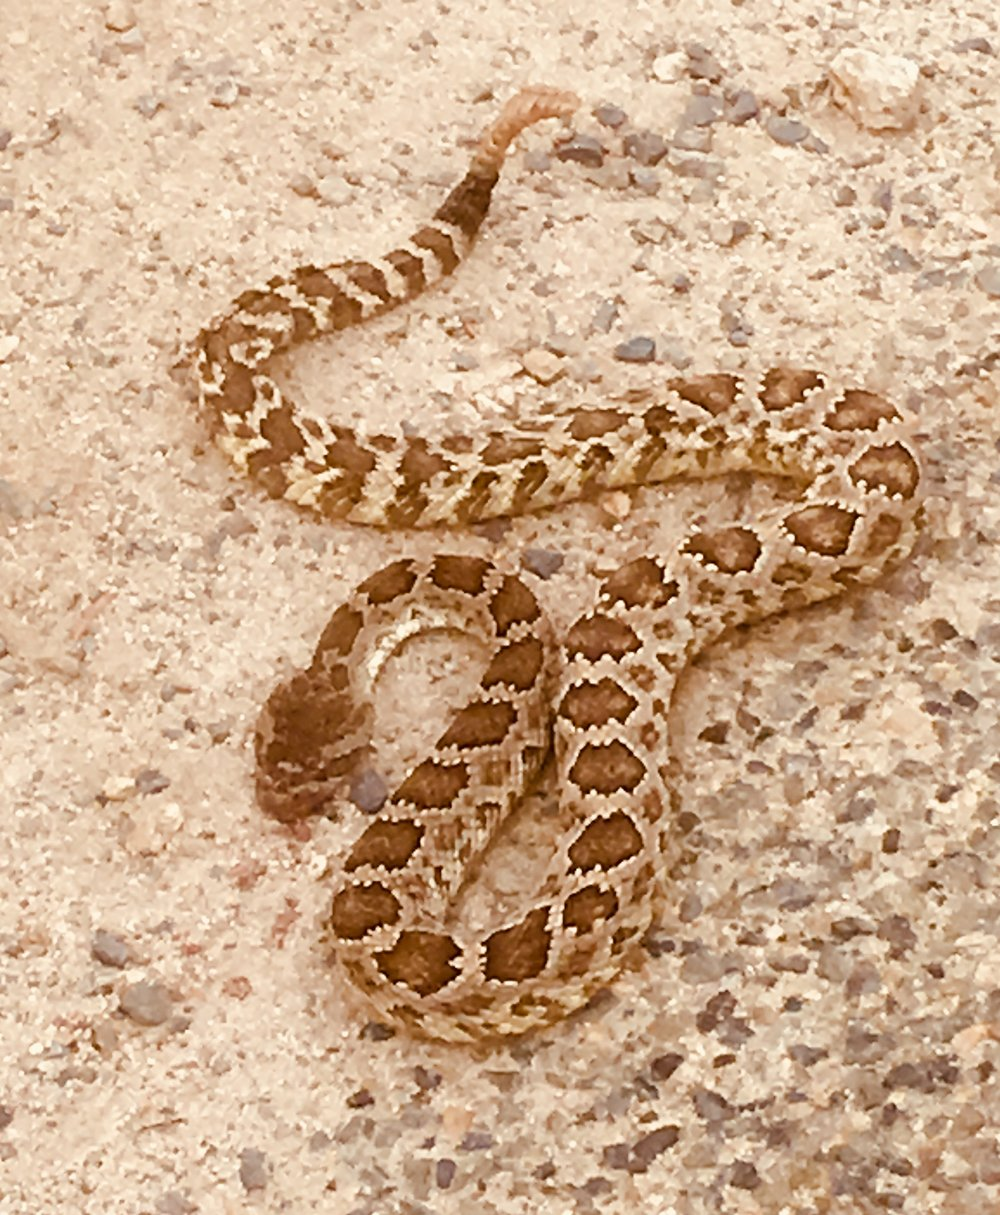 Just one of many rattle snakes along the way